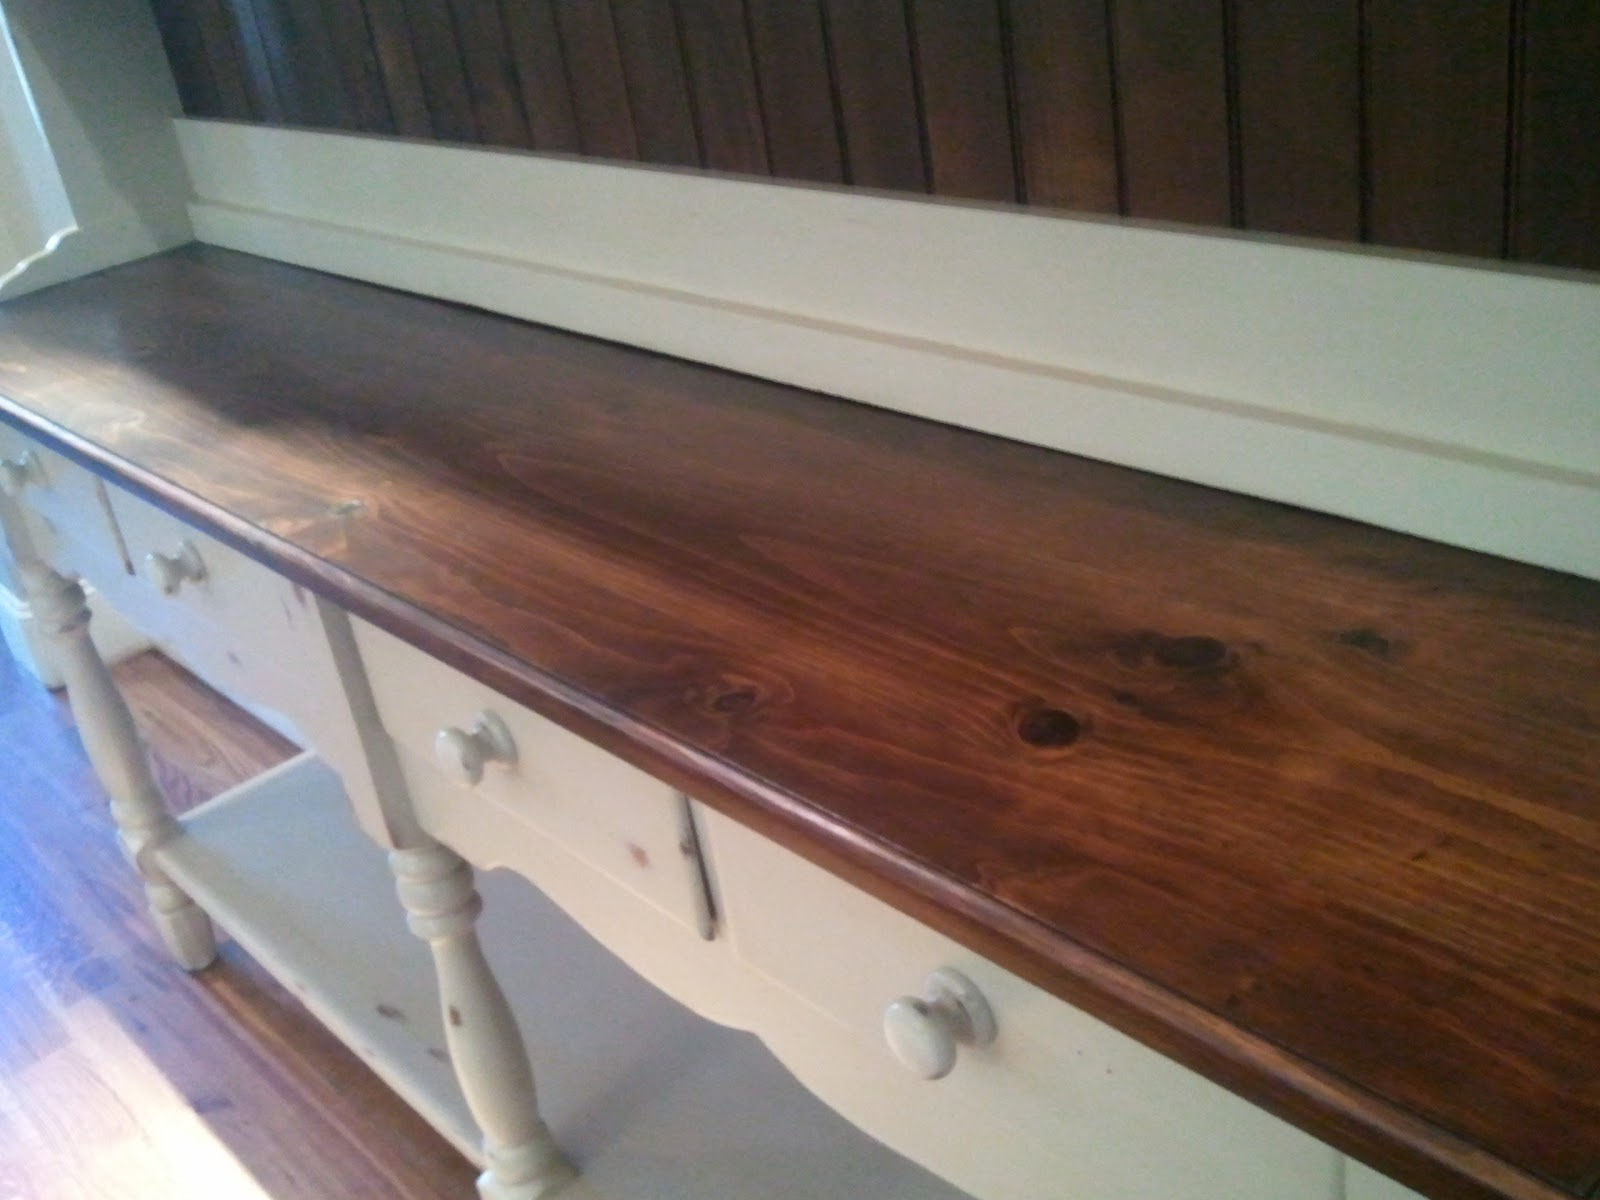 how to refinish kitchen cabinets without stripping aid hand blender image